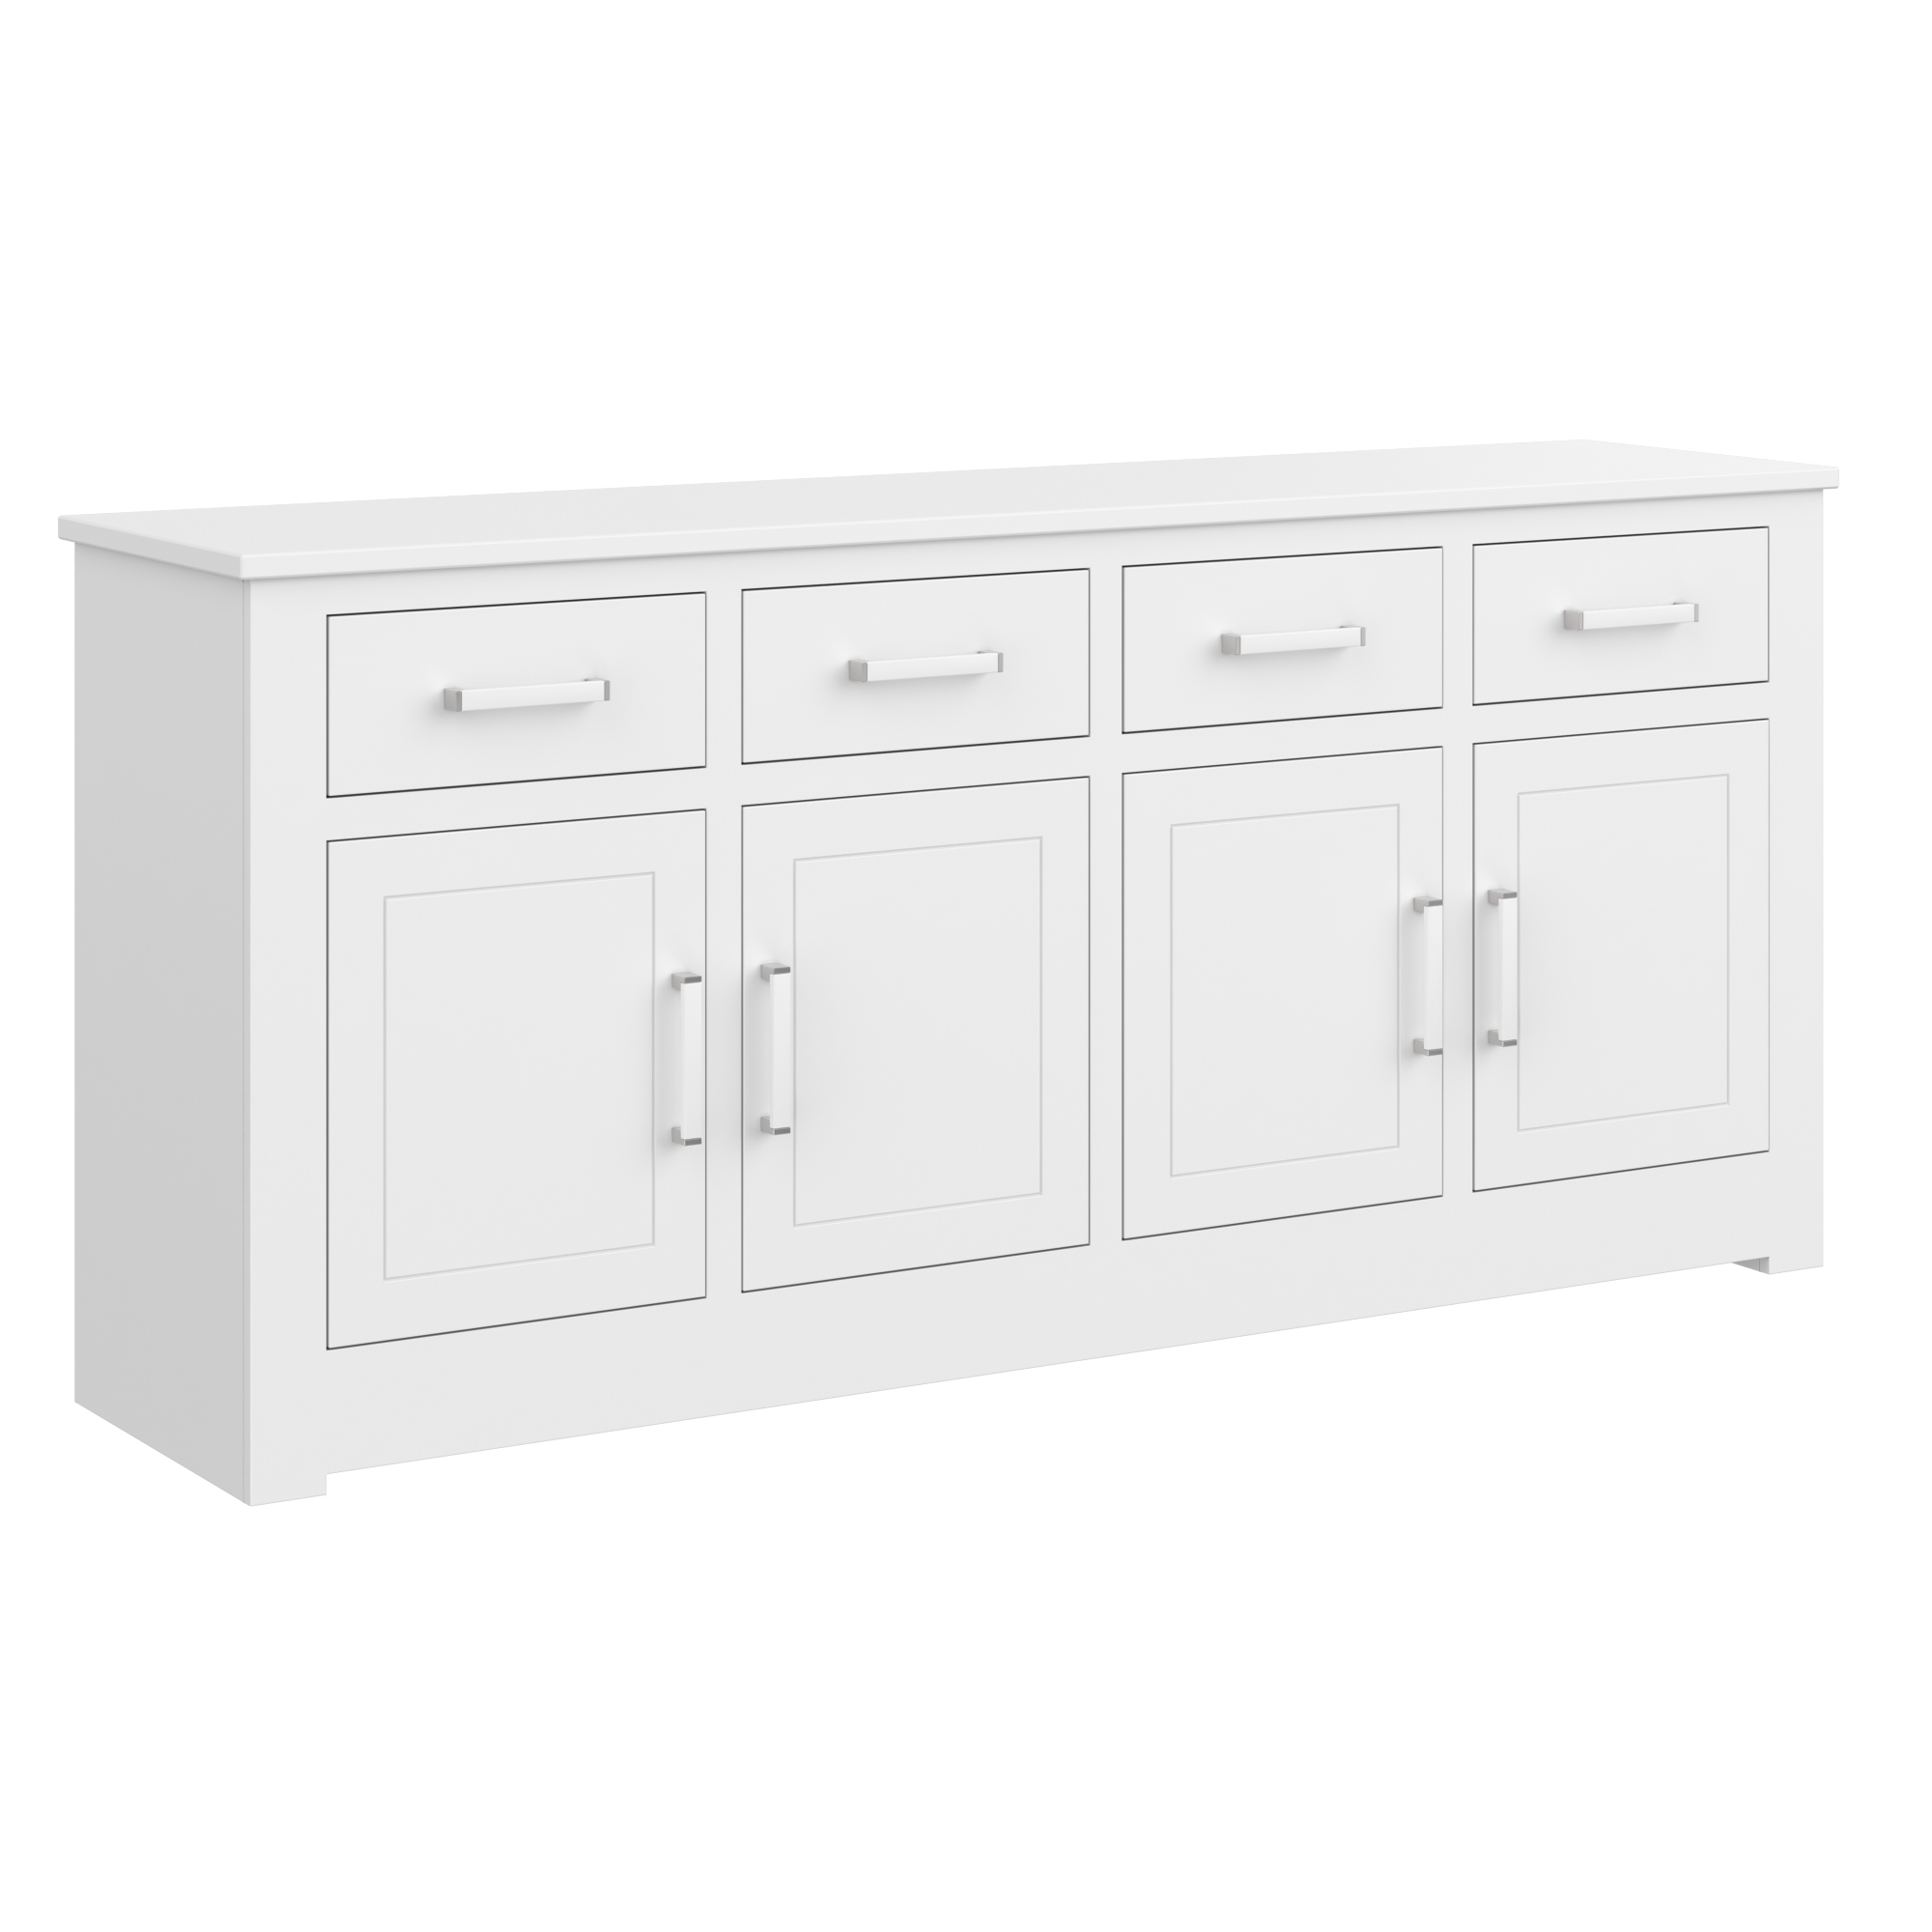 Four Door Four Drawer Base